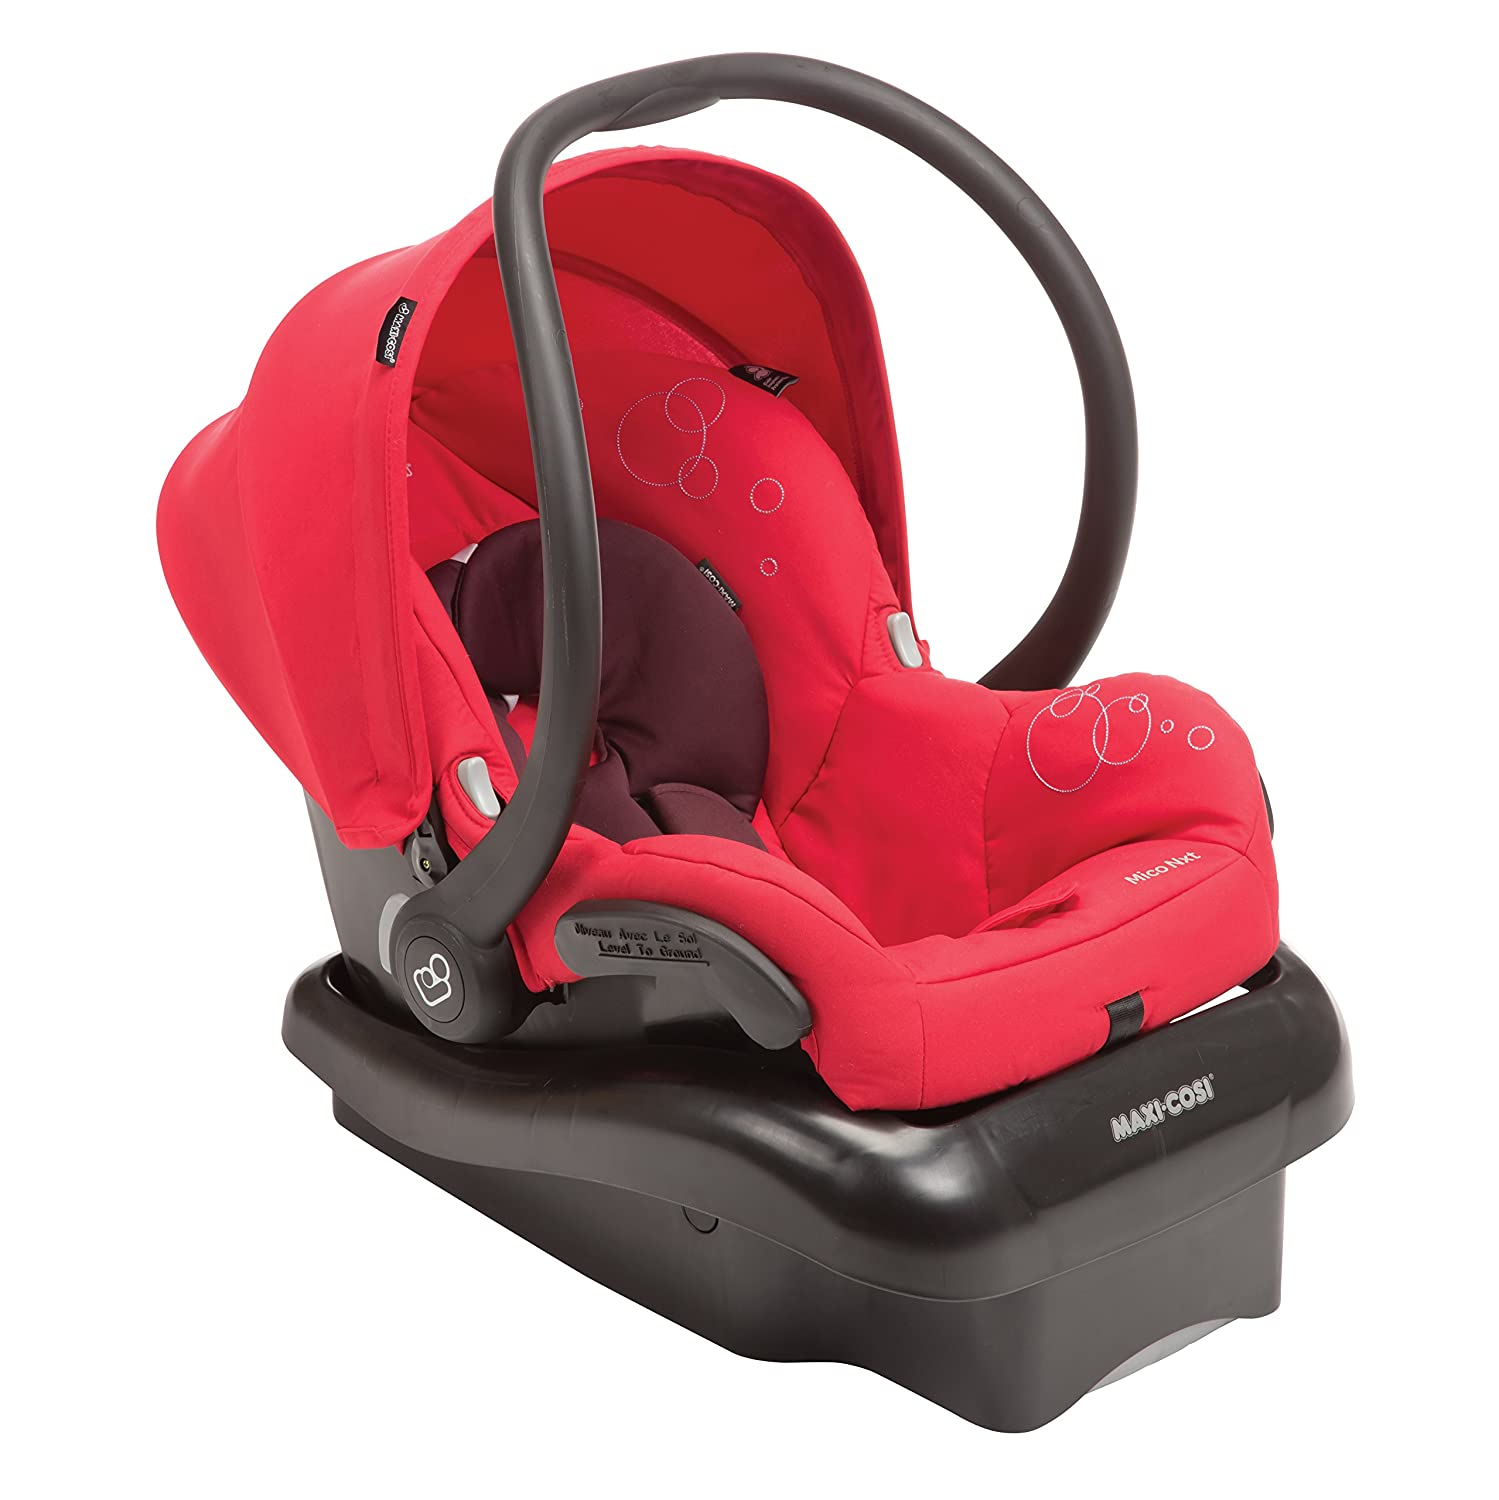 Maxi Cosi MICO NXT Infant Car Seat  (Intense Red)